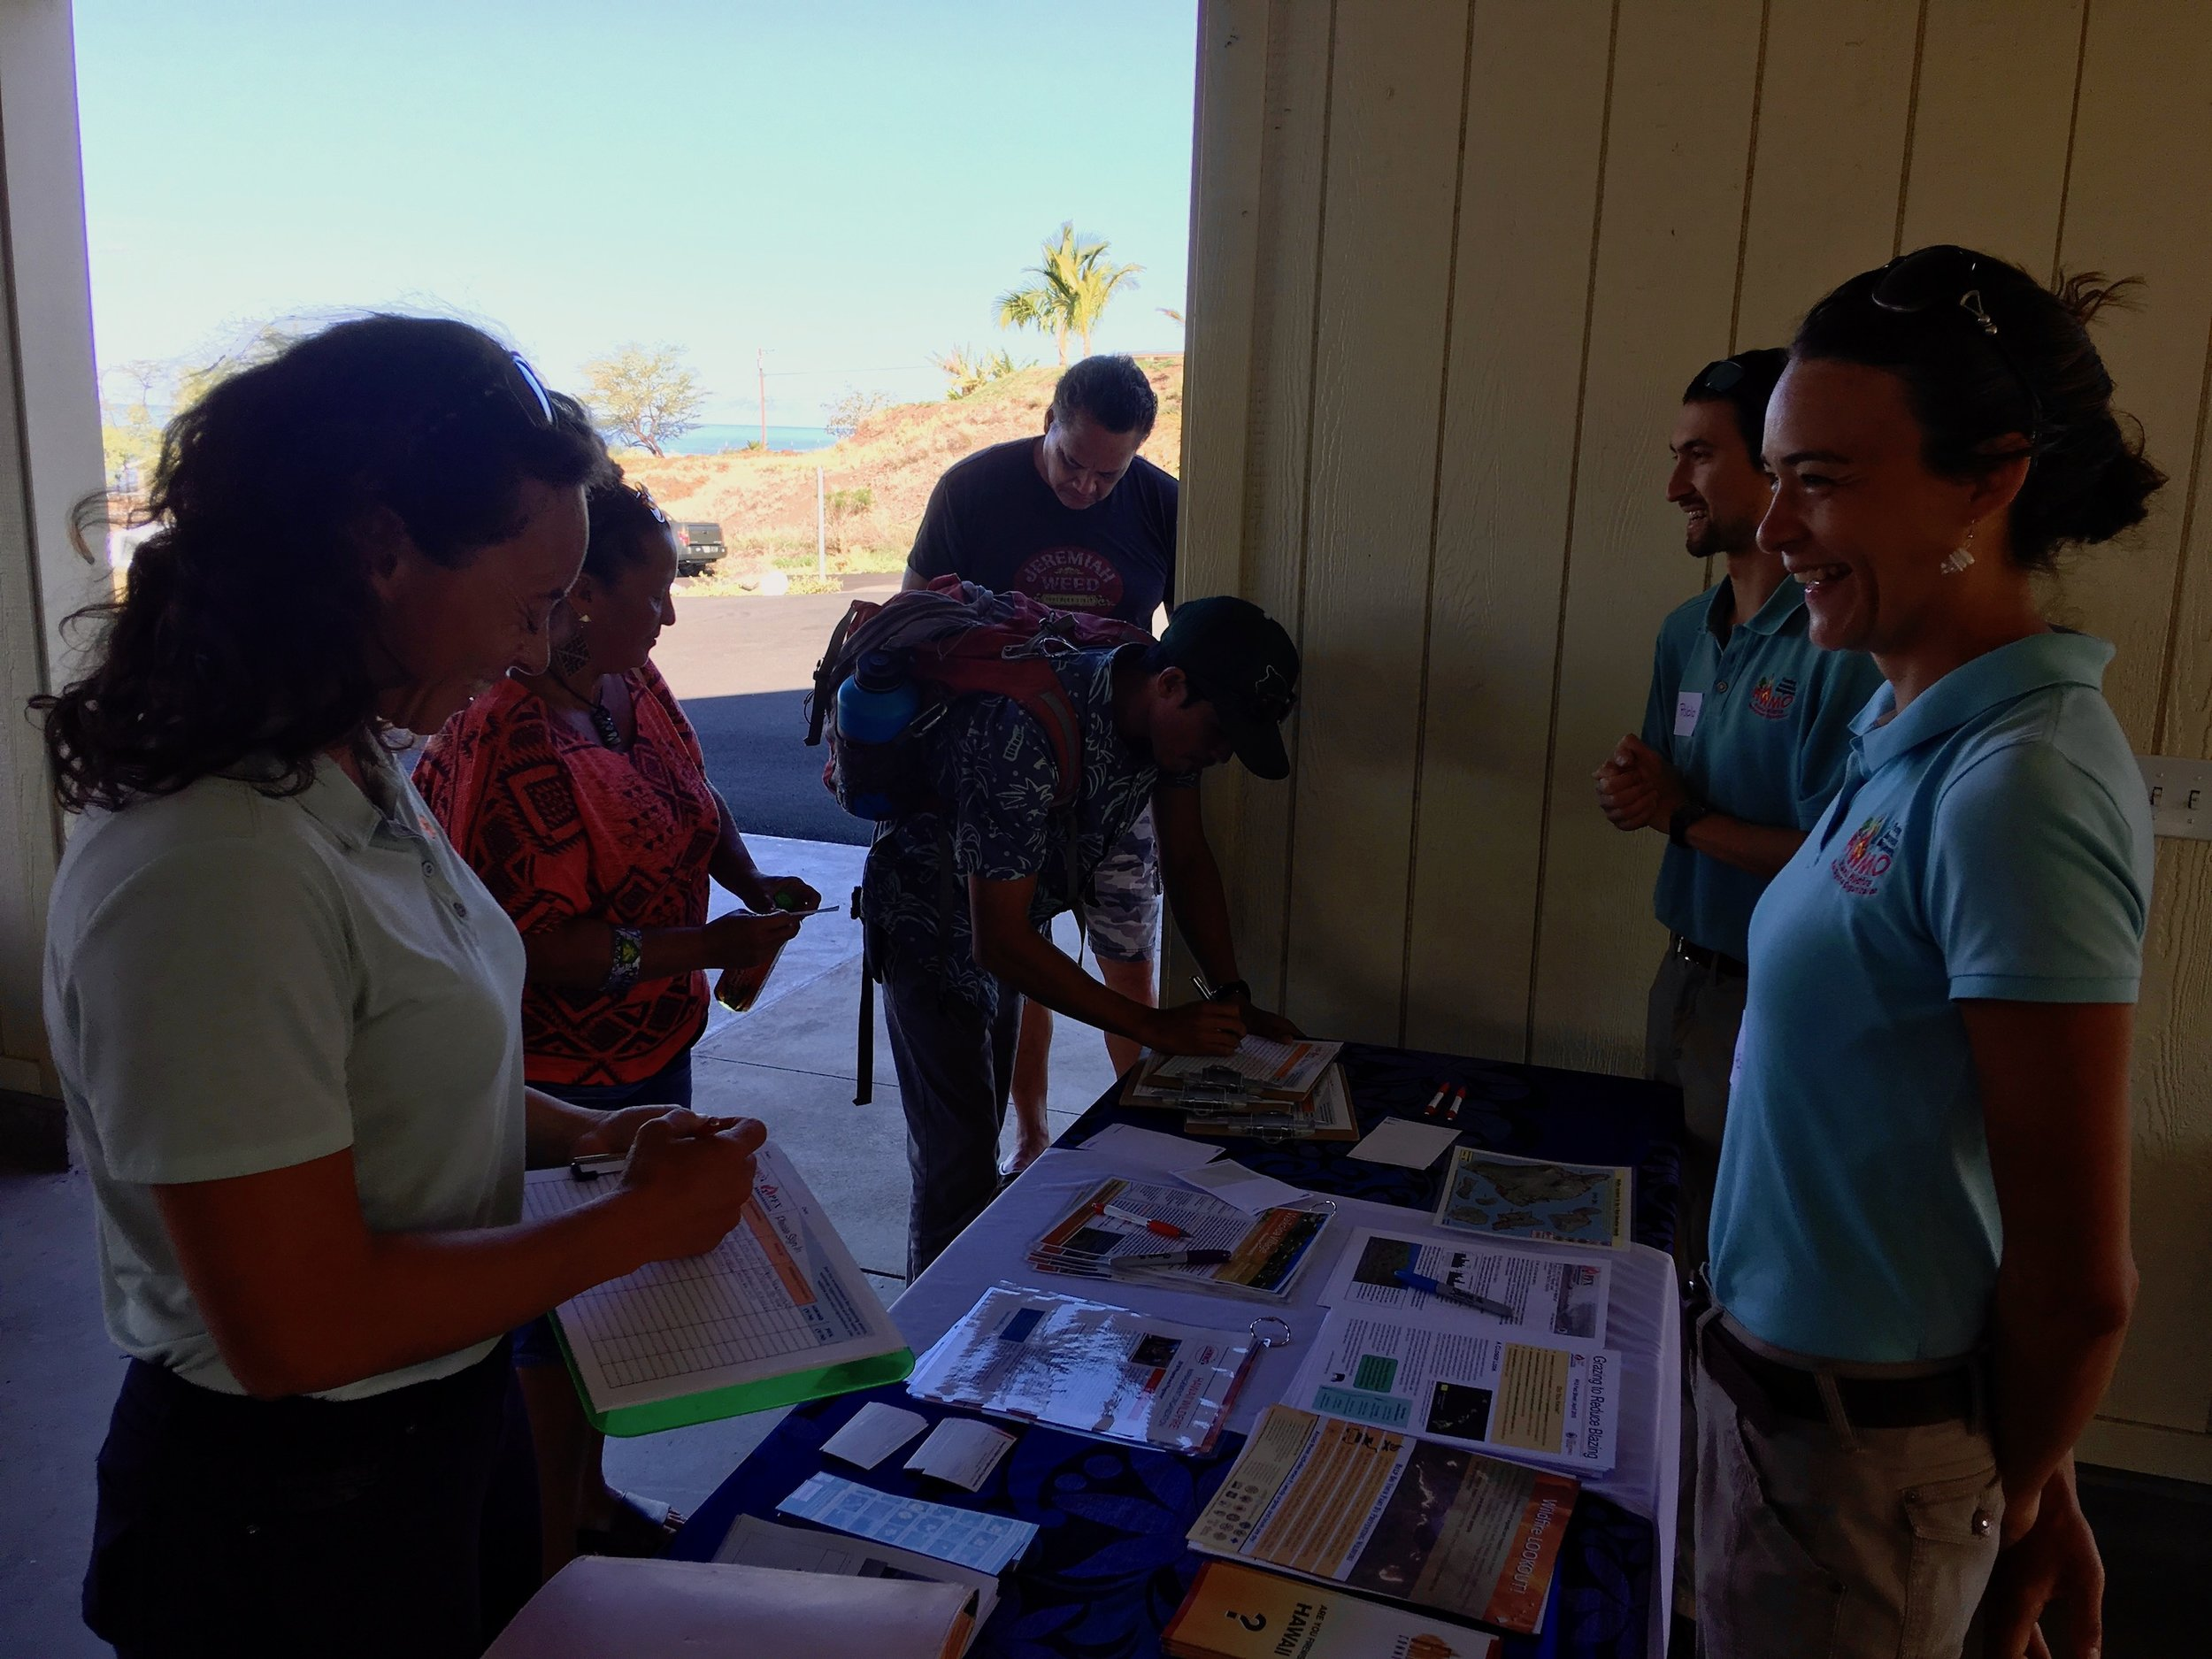 Hawaii Island Kailapa Vegetative Fuels Management Collaborative Action Planning Workshop_2_26_2019_4.jpg